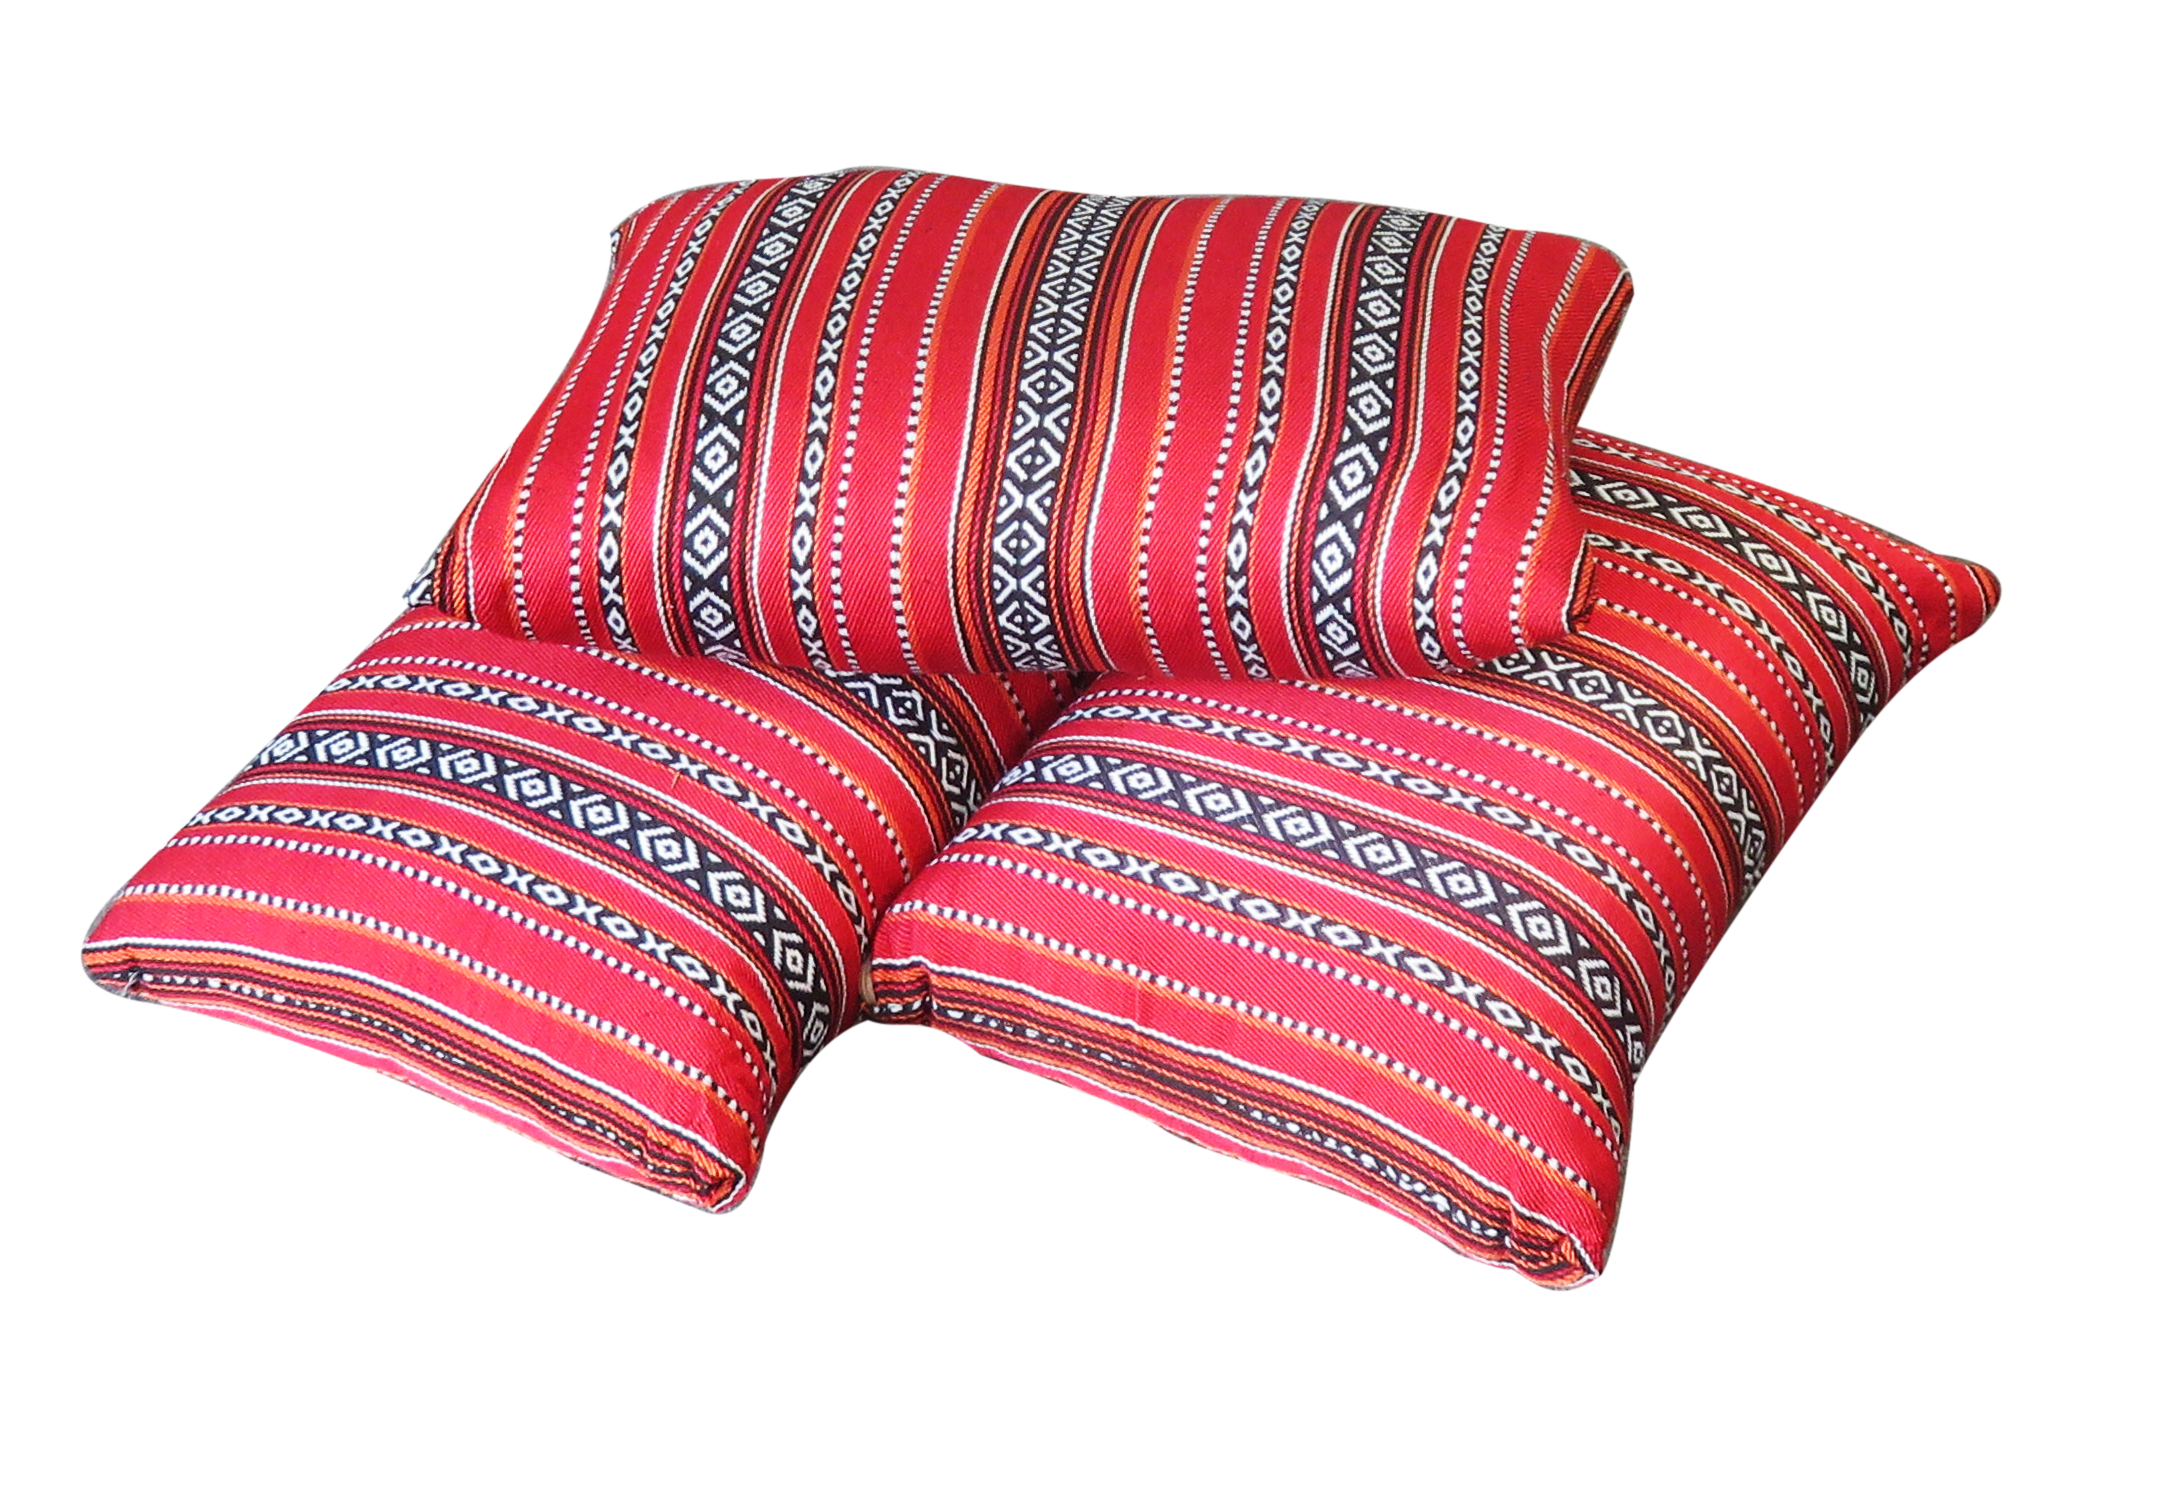 Low Majlis Cushion For Rent Or Sale In UAE For Traditional